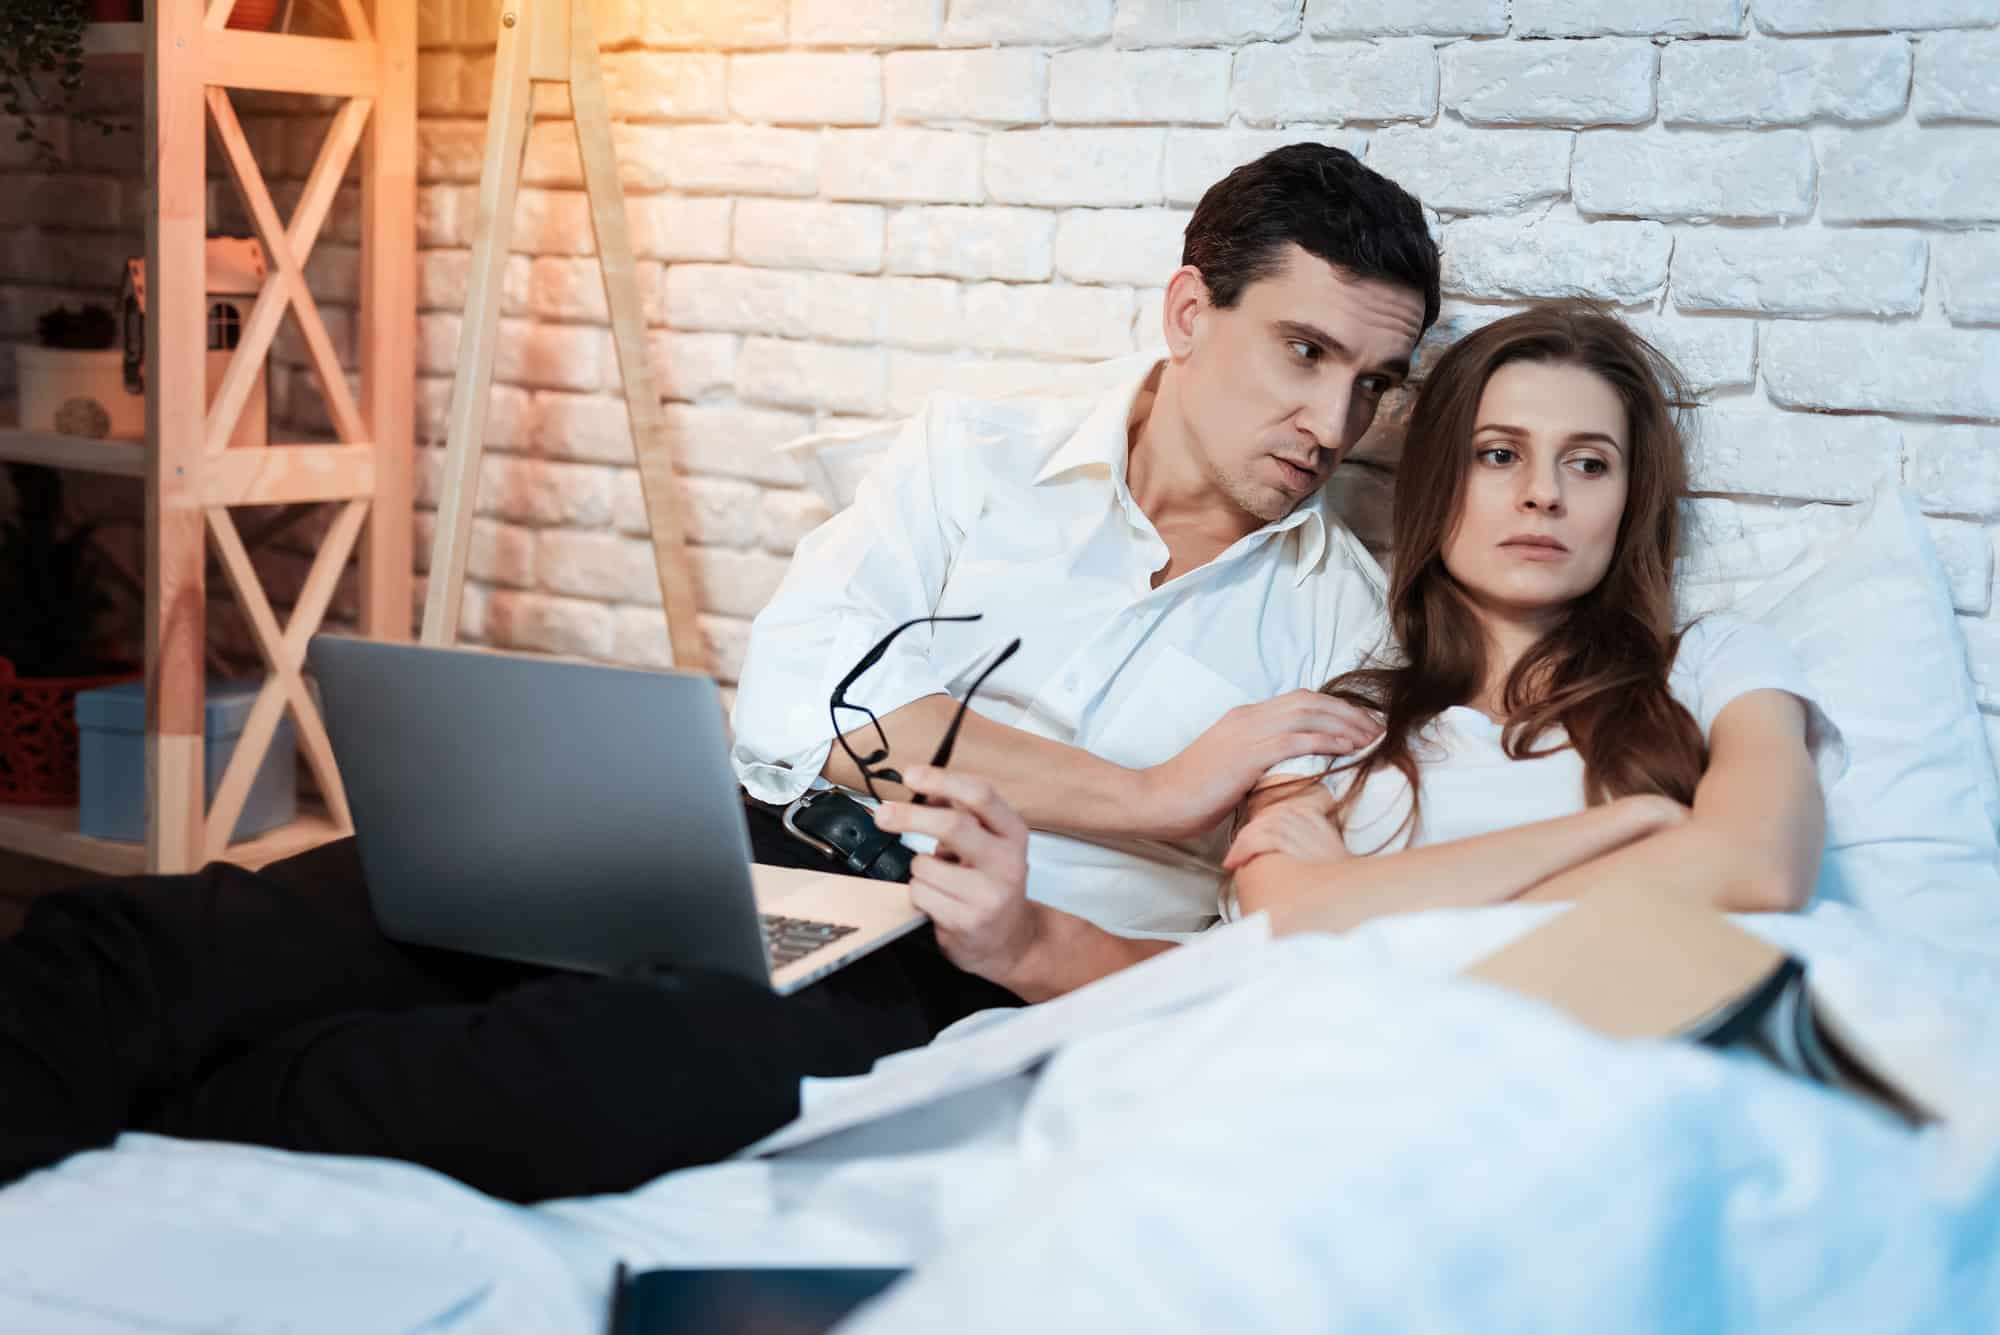 My Husbands Job Is Ruining Our Marriage (8 Destructive